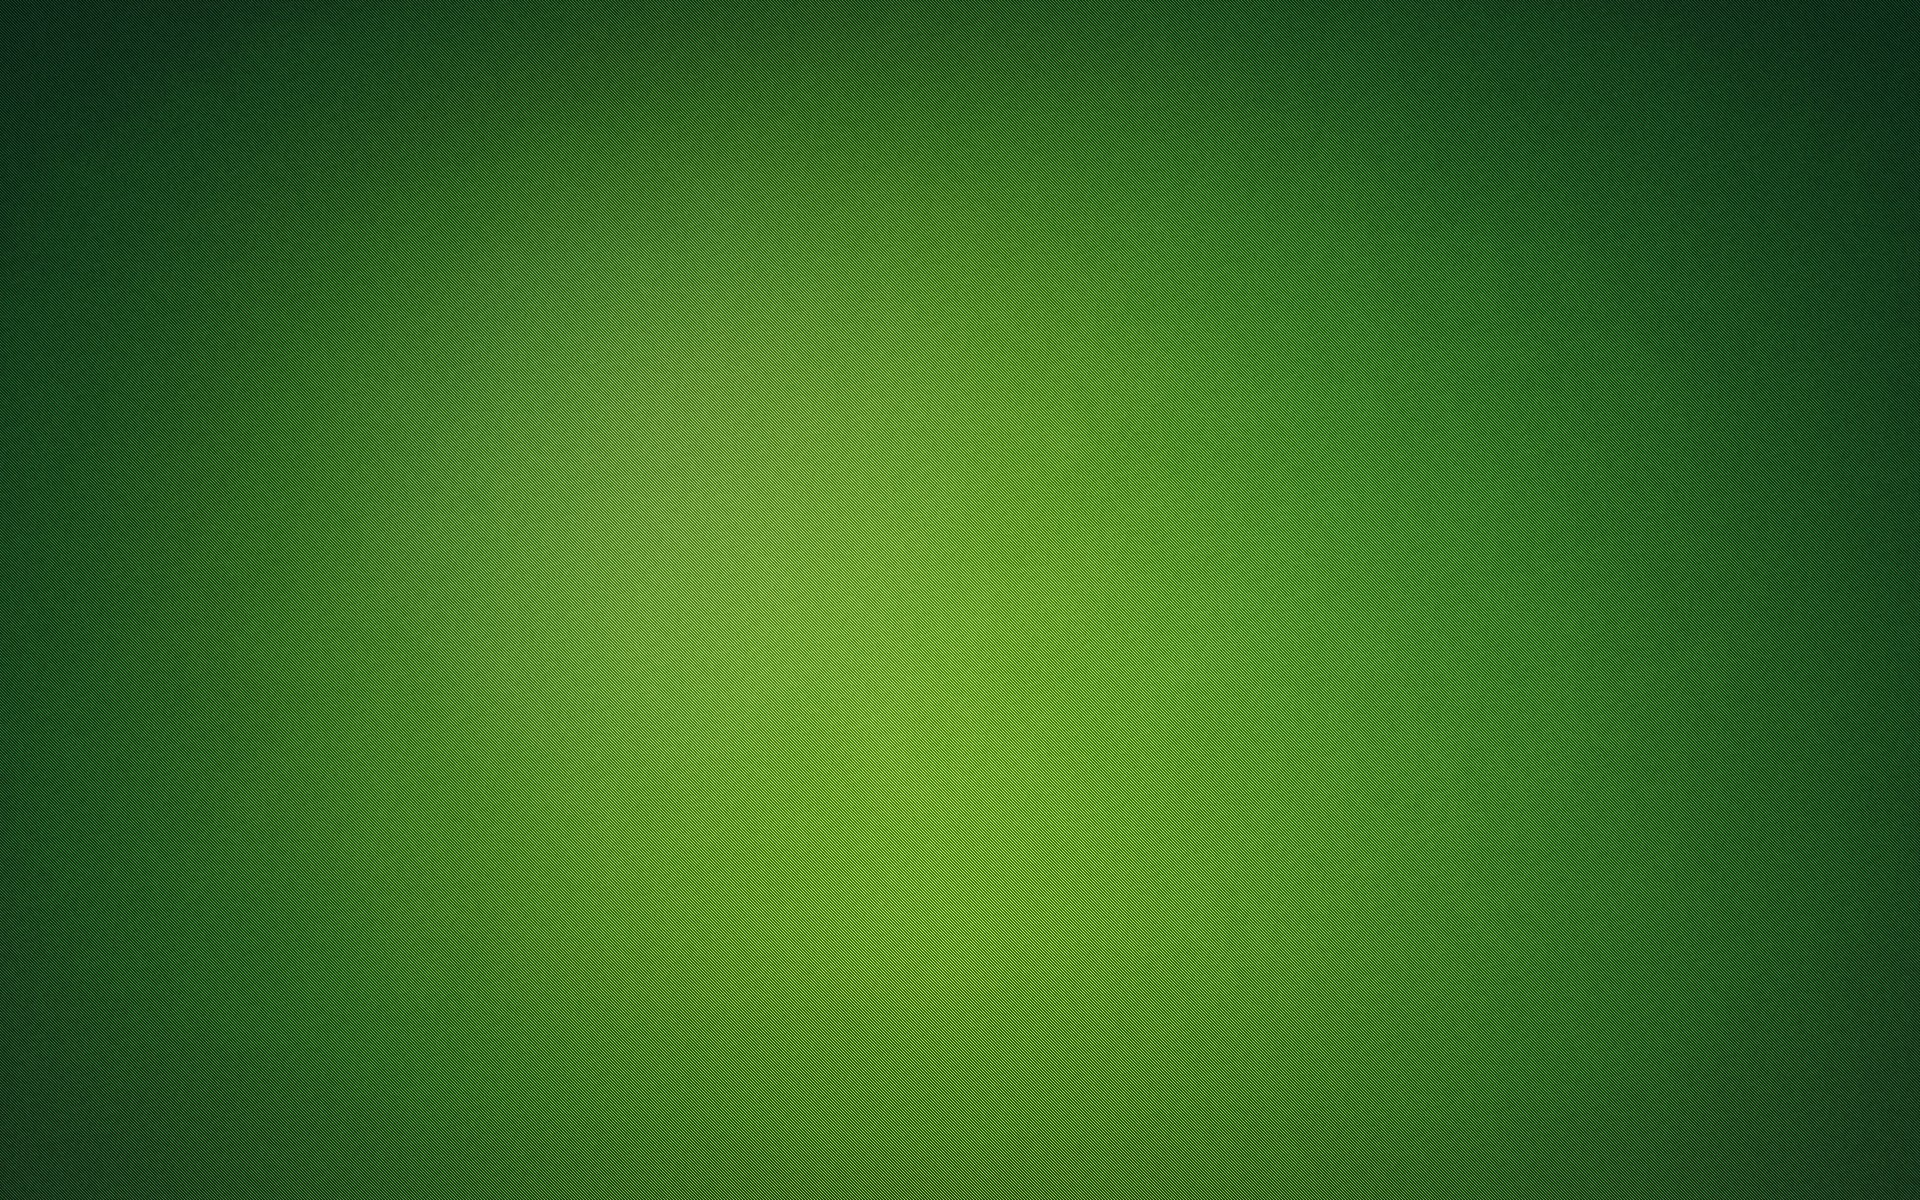 Apple 3d Hd Wallpaper For Iphone Green Background 19 1920x1200